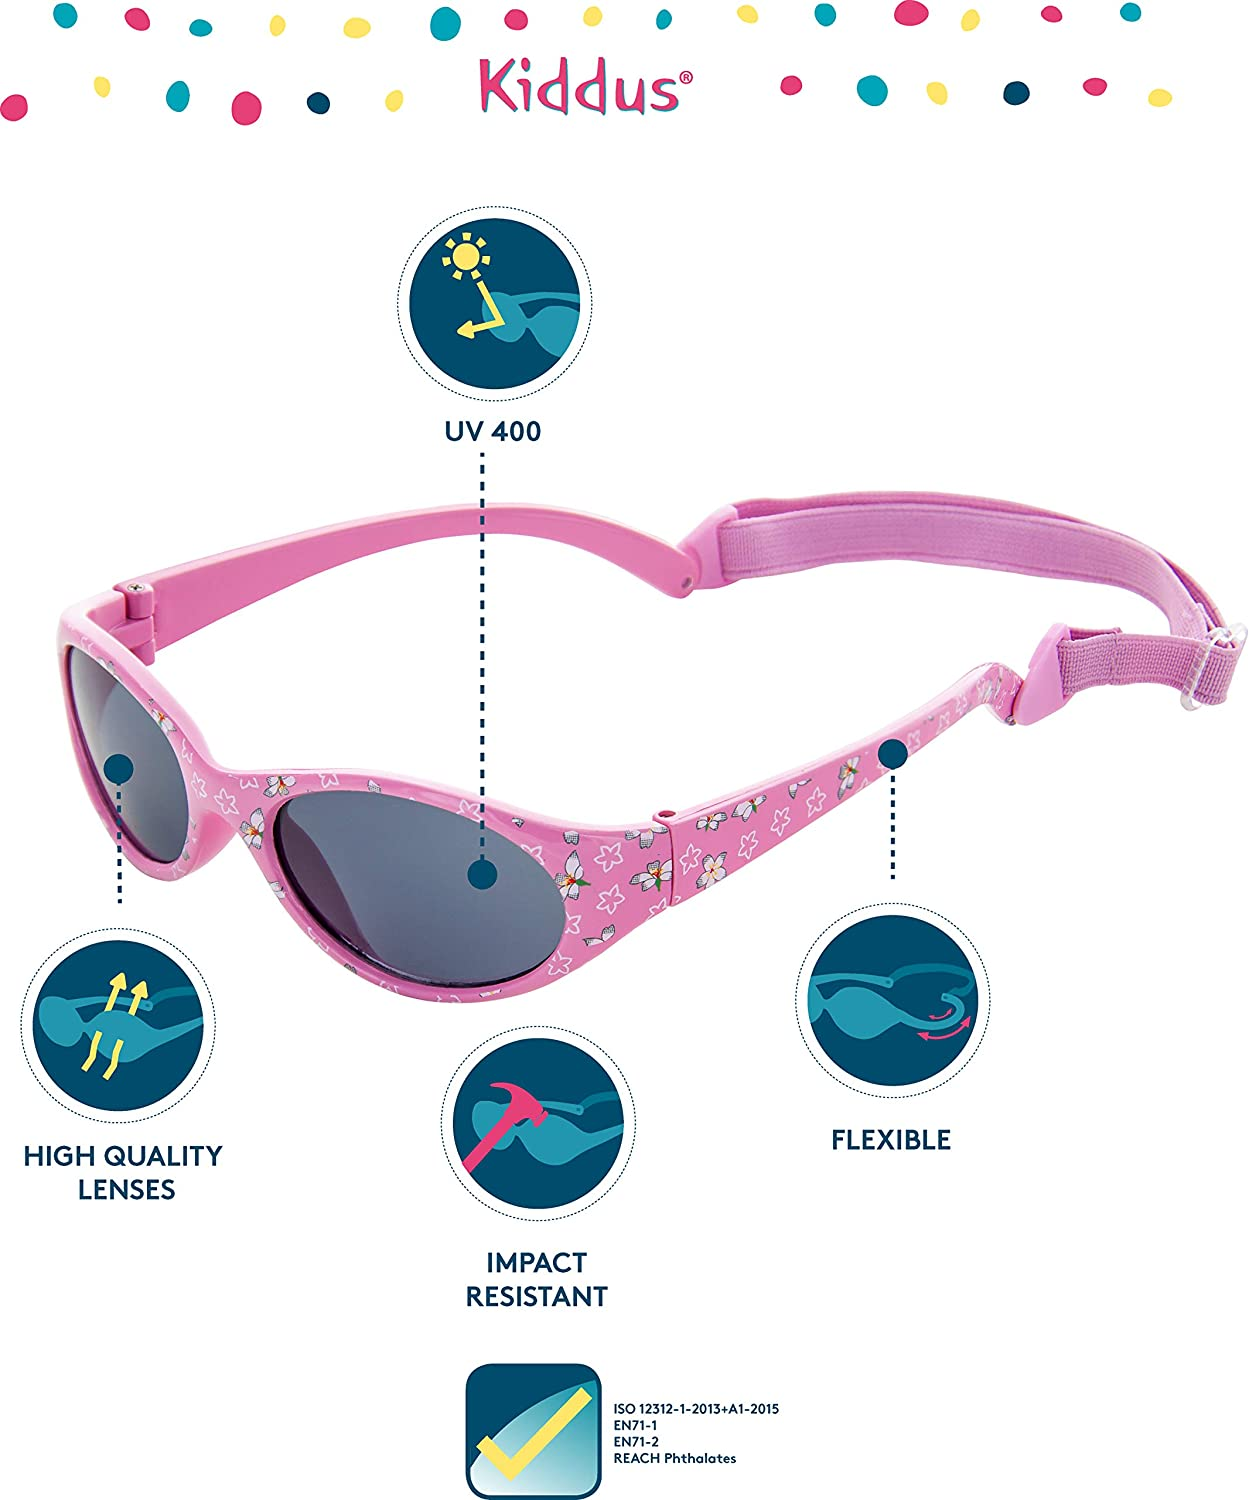 KIDDUS POLARIZED Sunglasses for Kids Boy Girl Children Toddler From 6 years old Impact resistant 100/% UV protection Comfortable and Secure